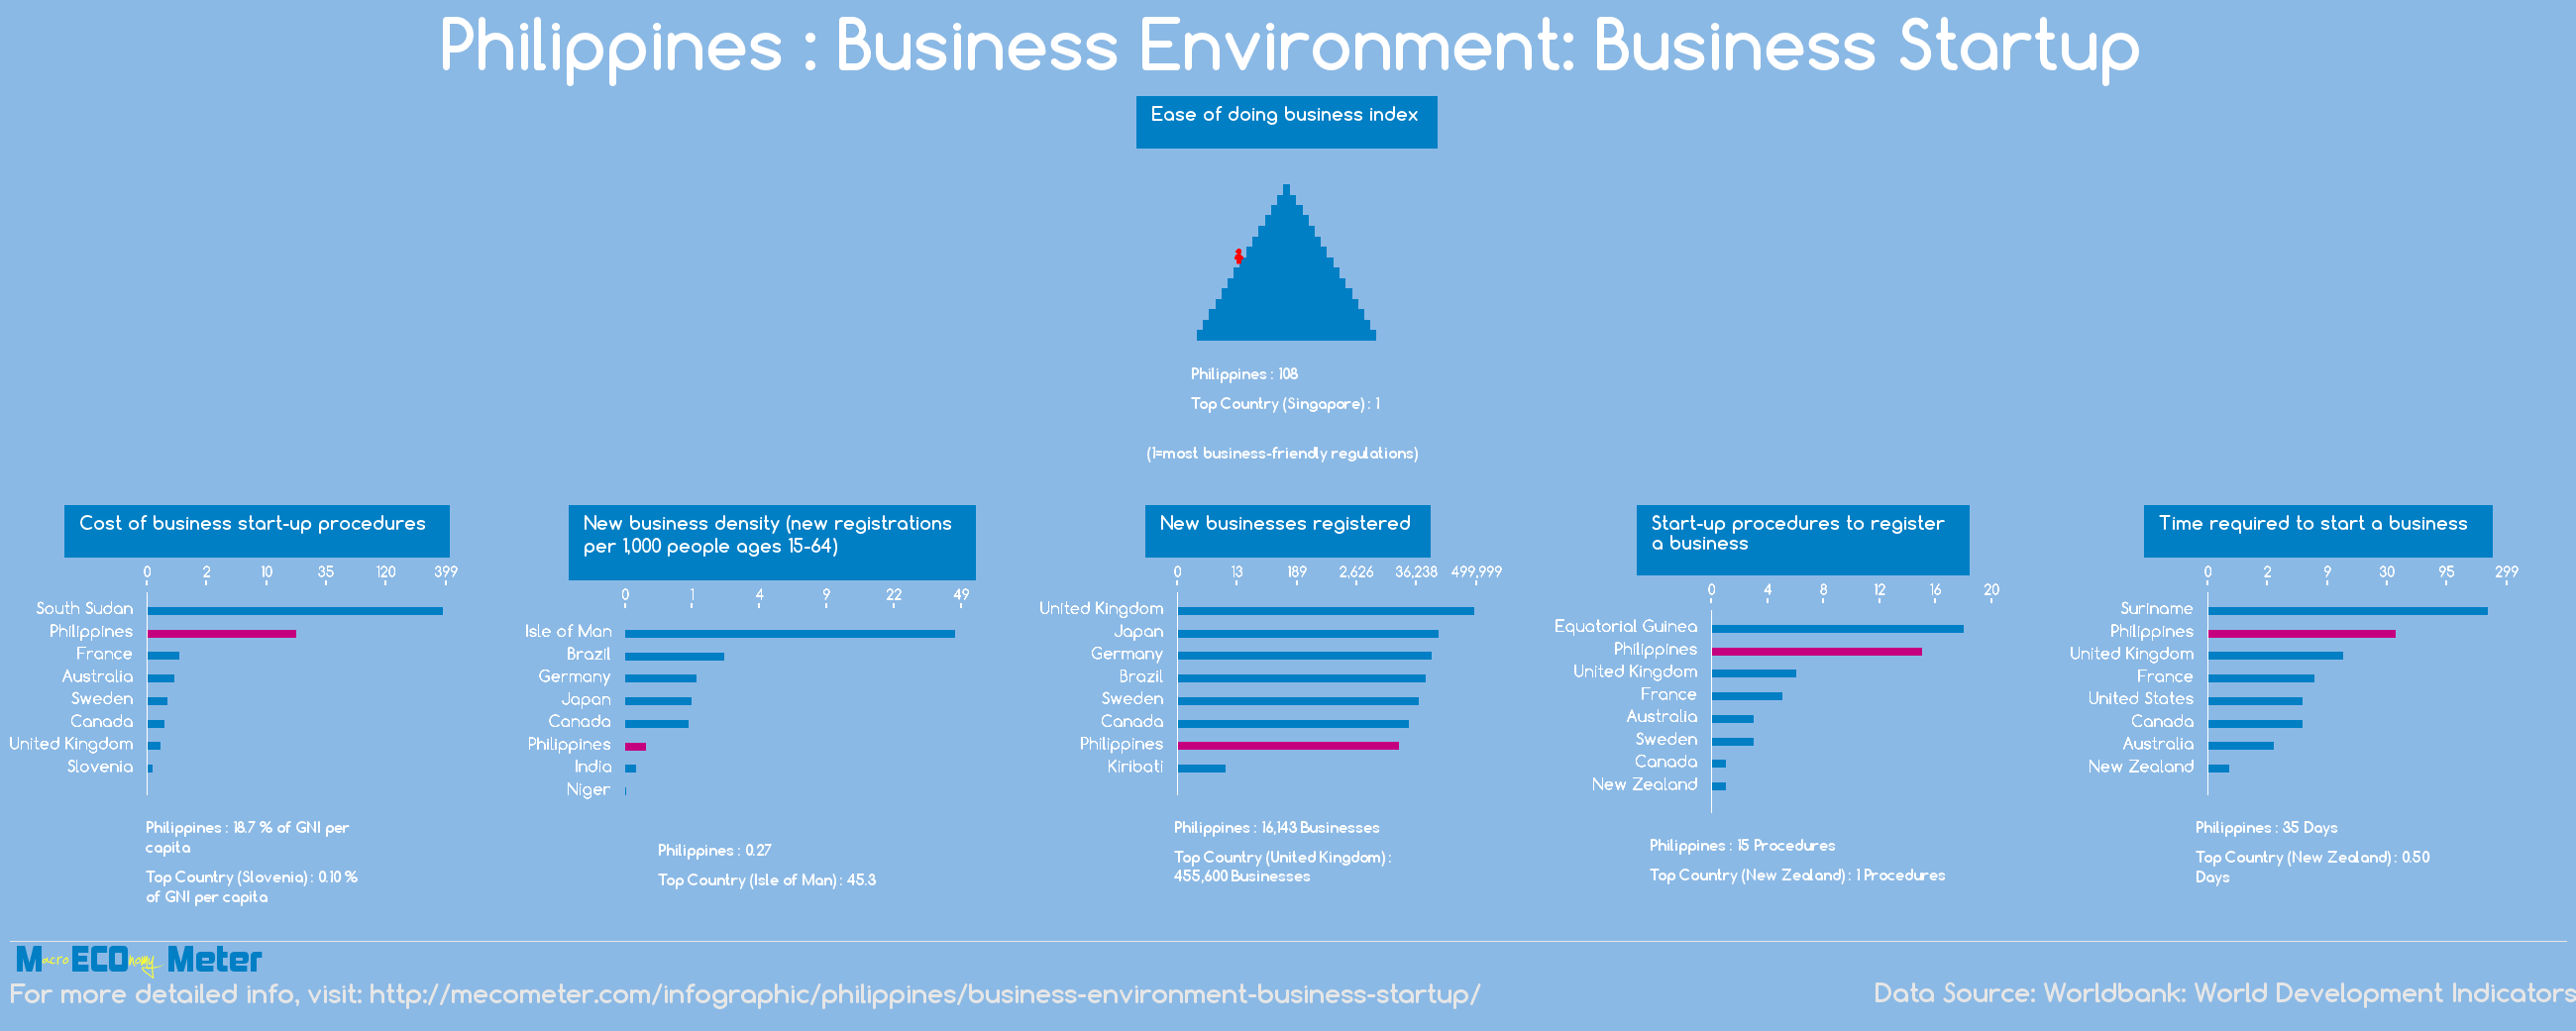 Philippines : Business Environment: Business Startup